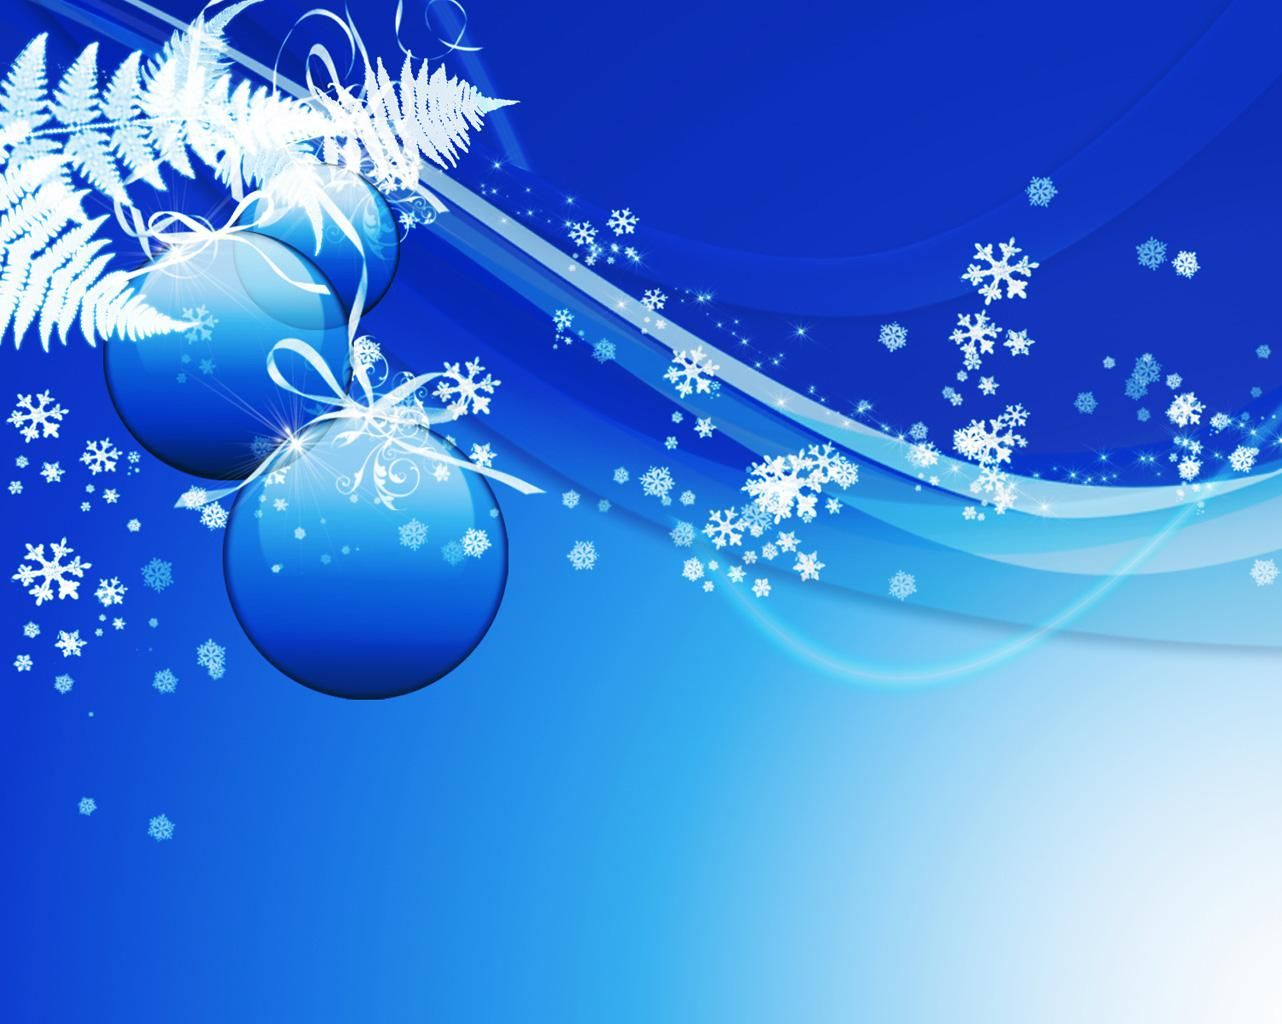 Cute Cartoon Christmas Wallpaper 11186 Hd Wallpapers in ...